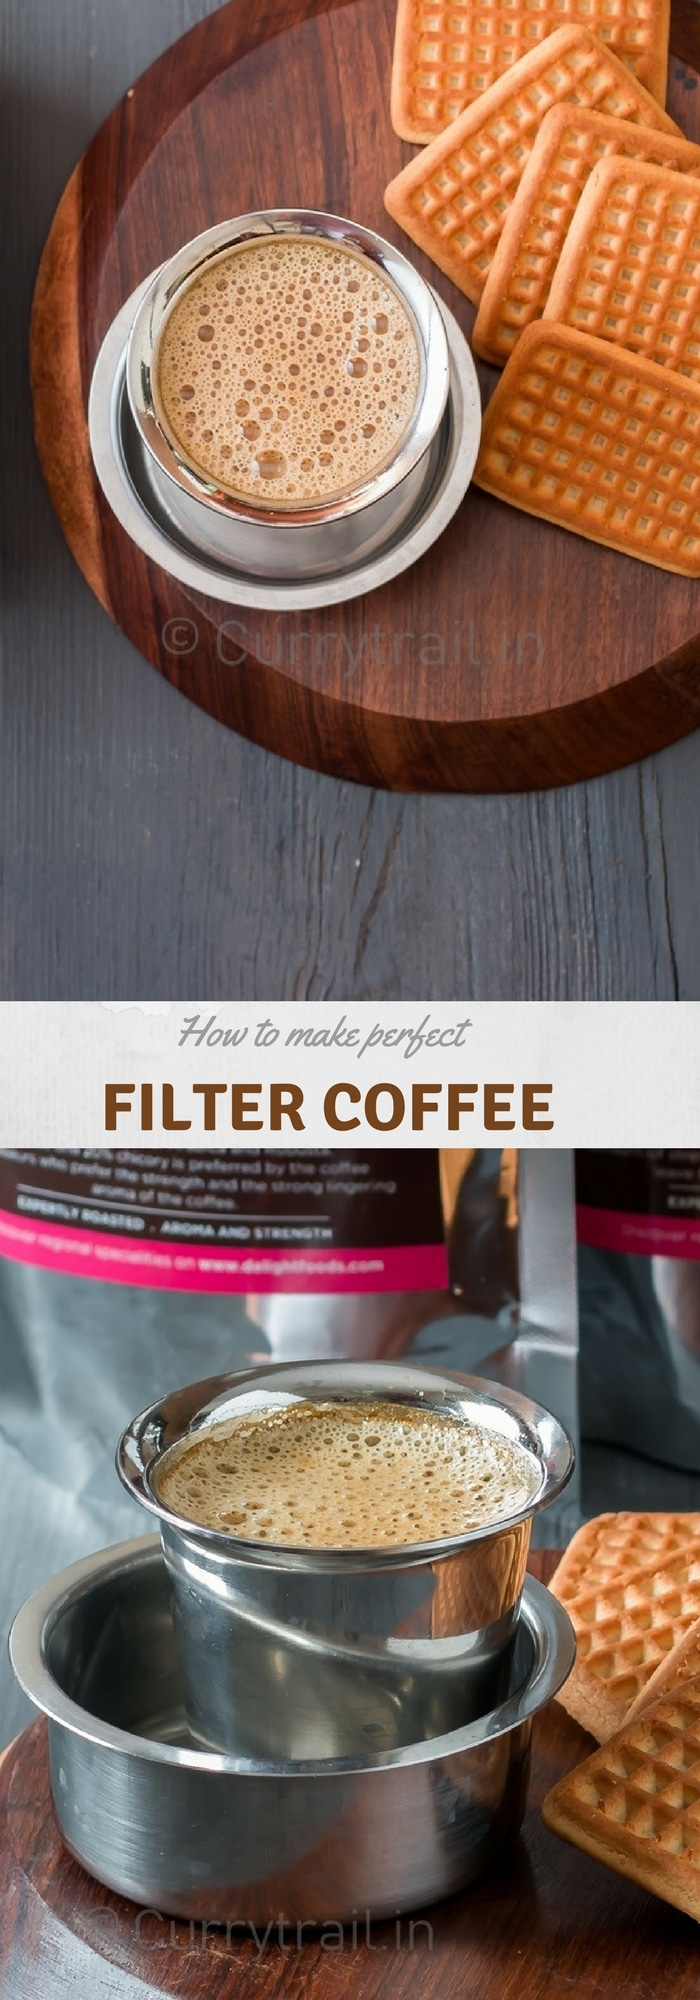 how to make the best filter coffee at home with text overlay